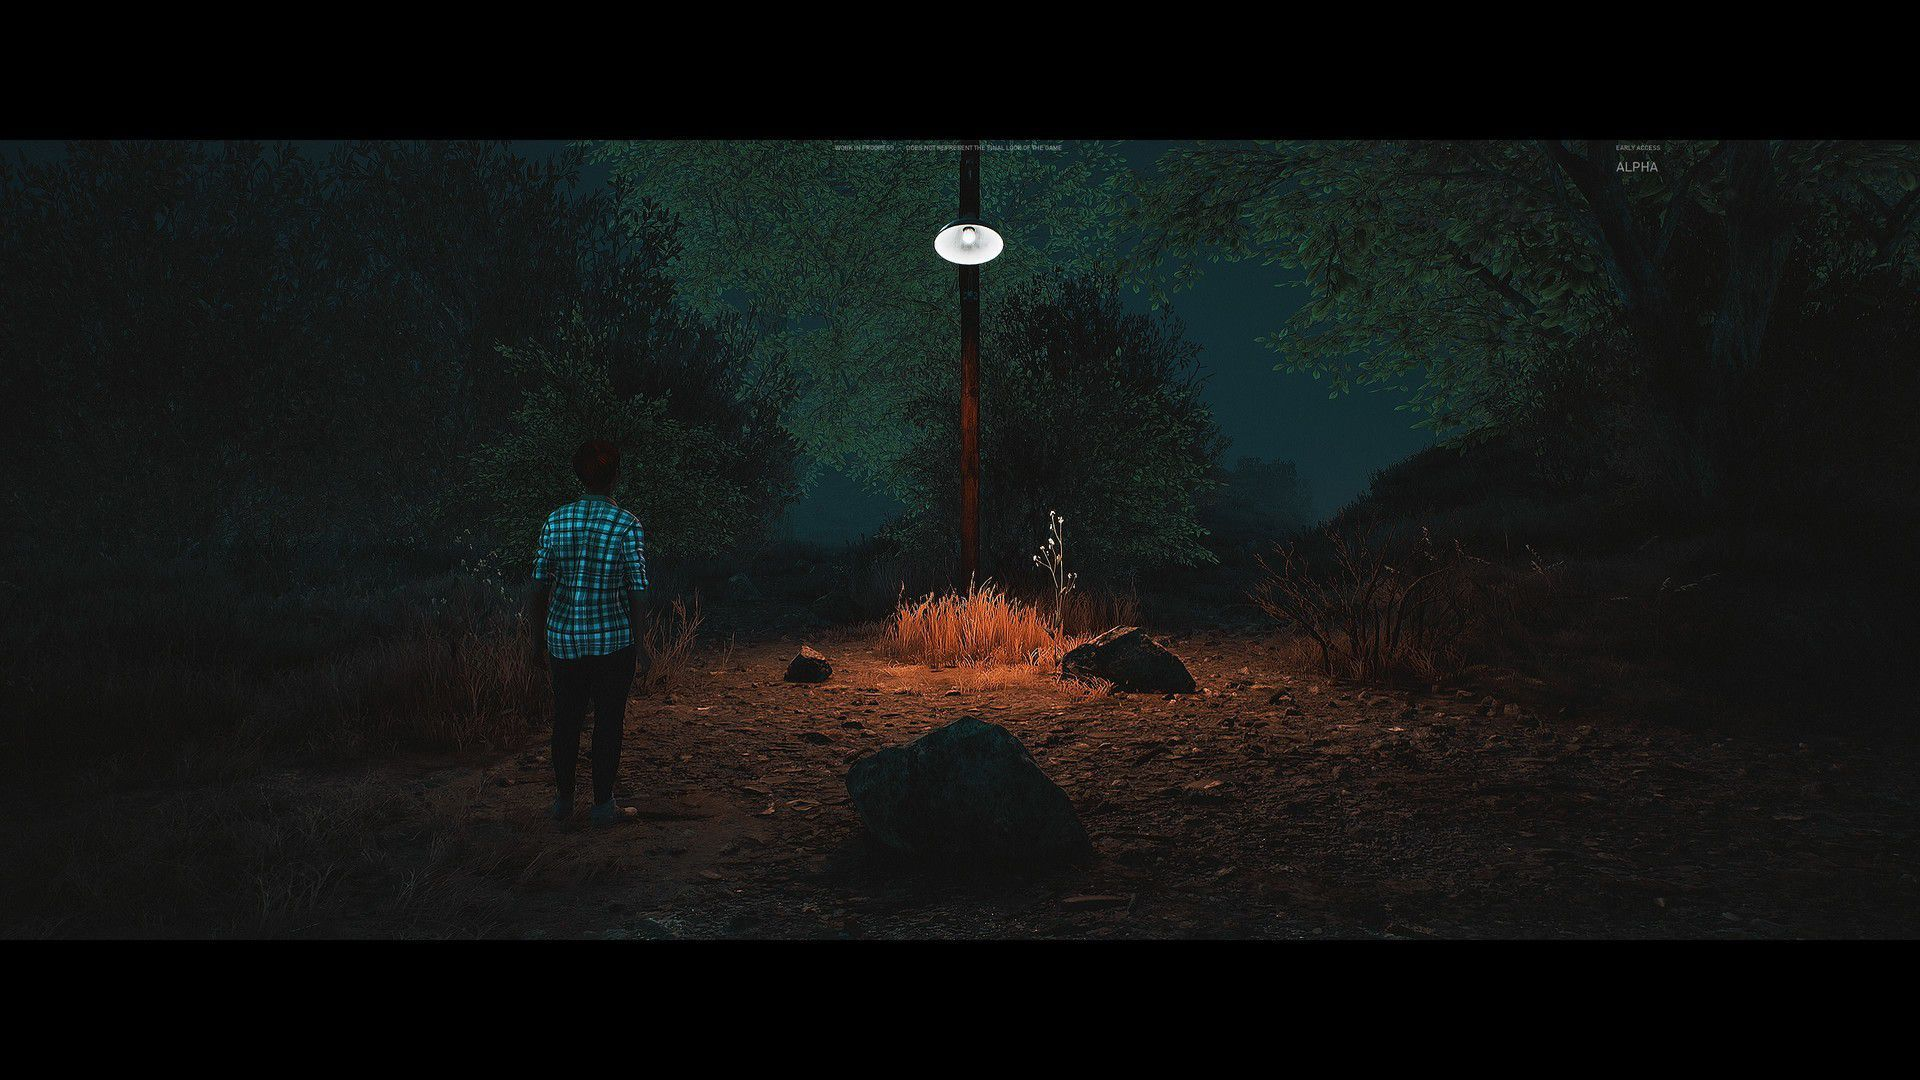 The Horror Game Abandoned, Gets App Release Date